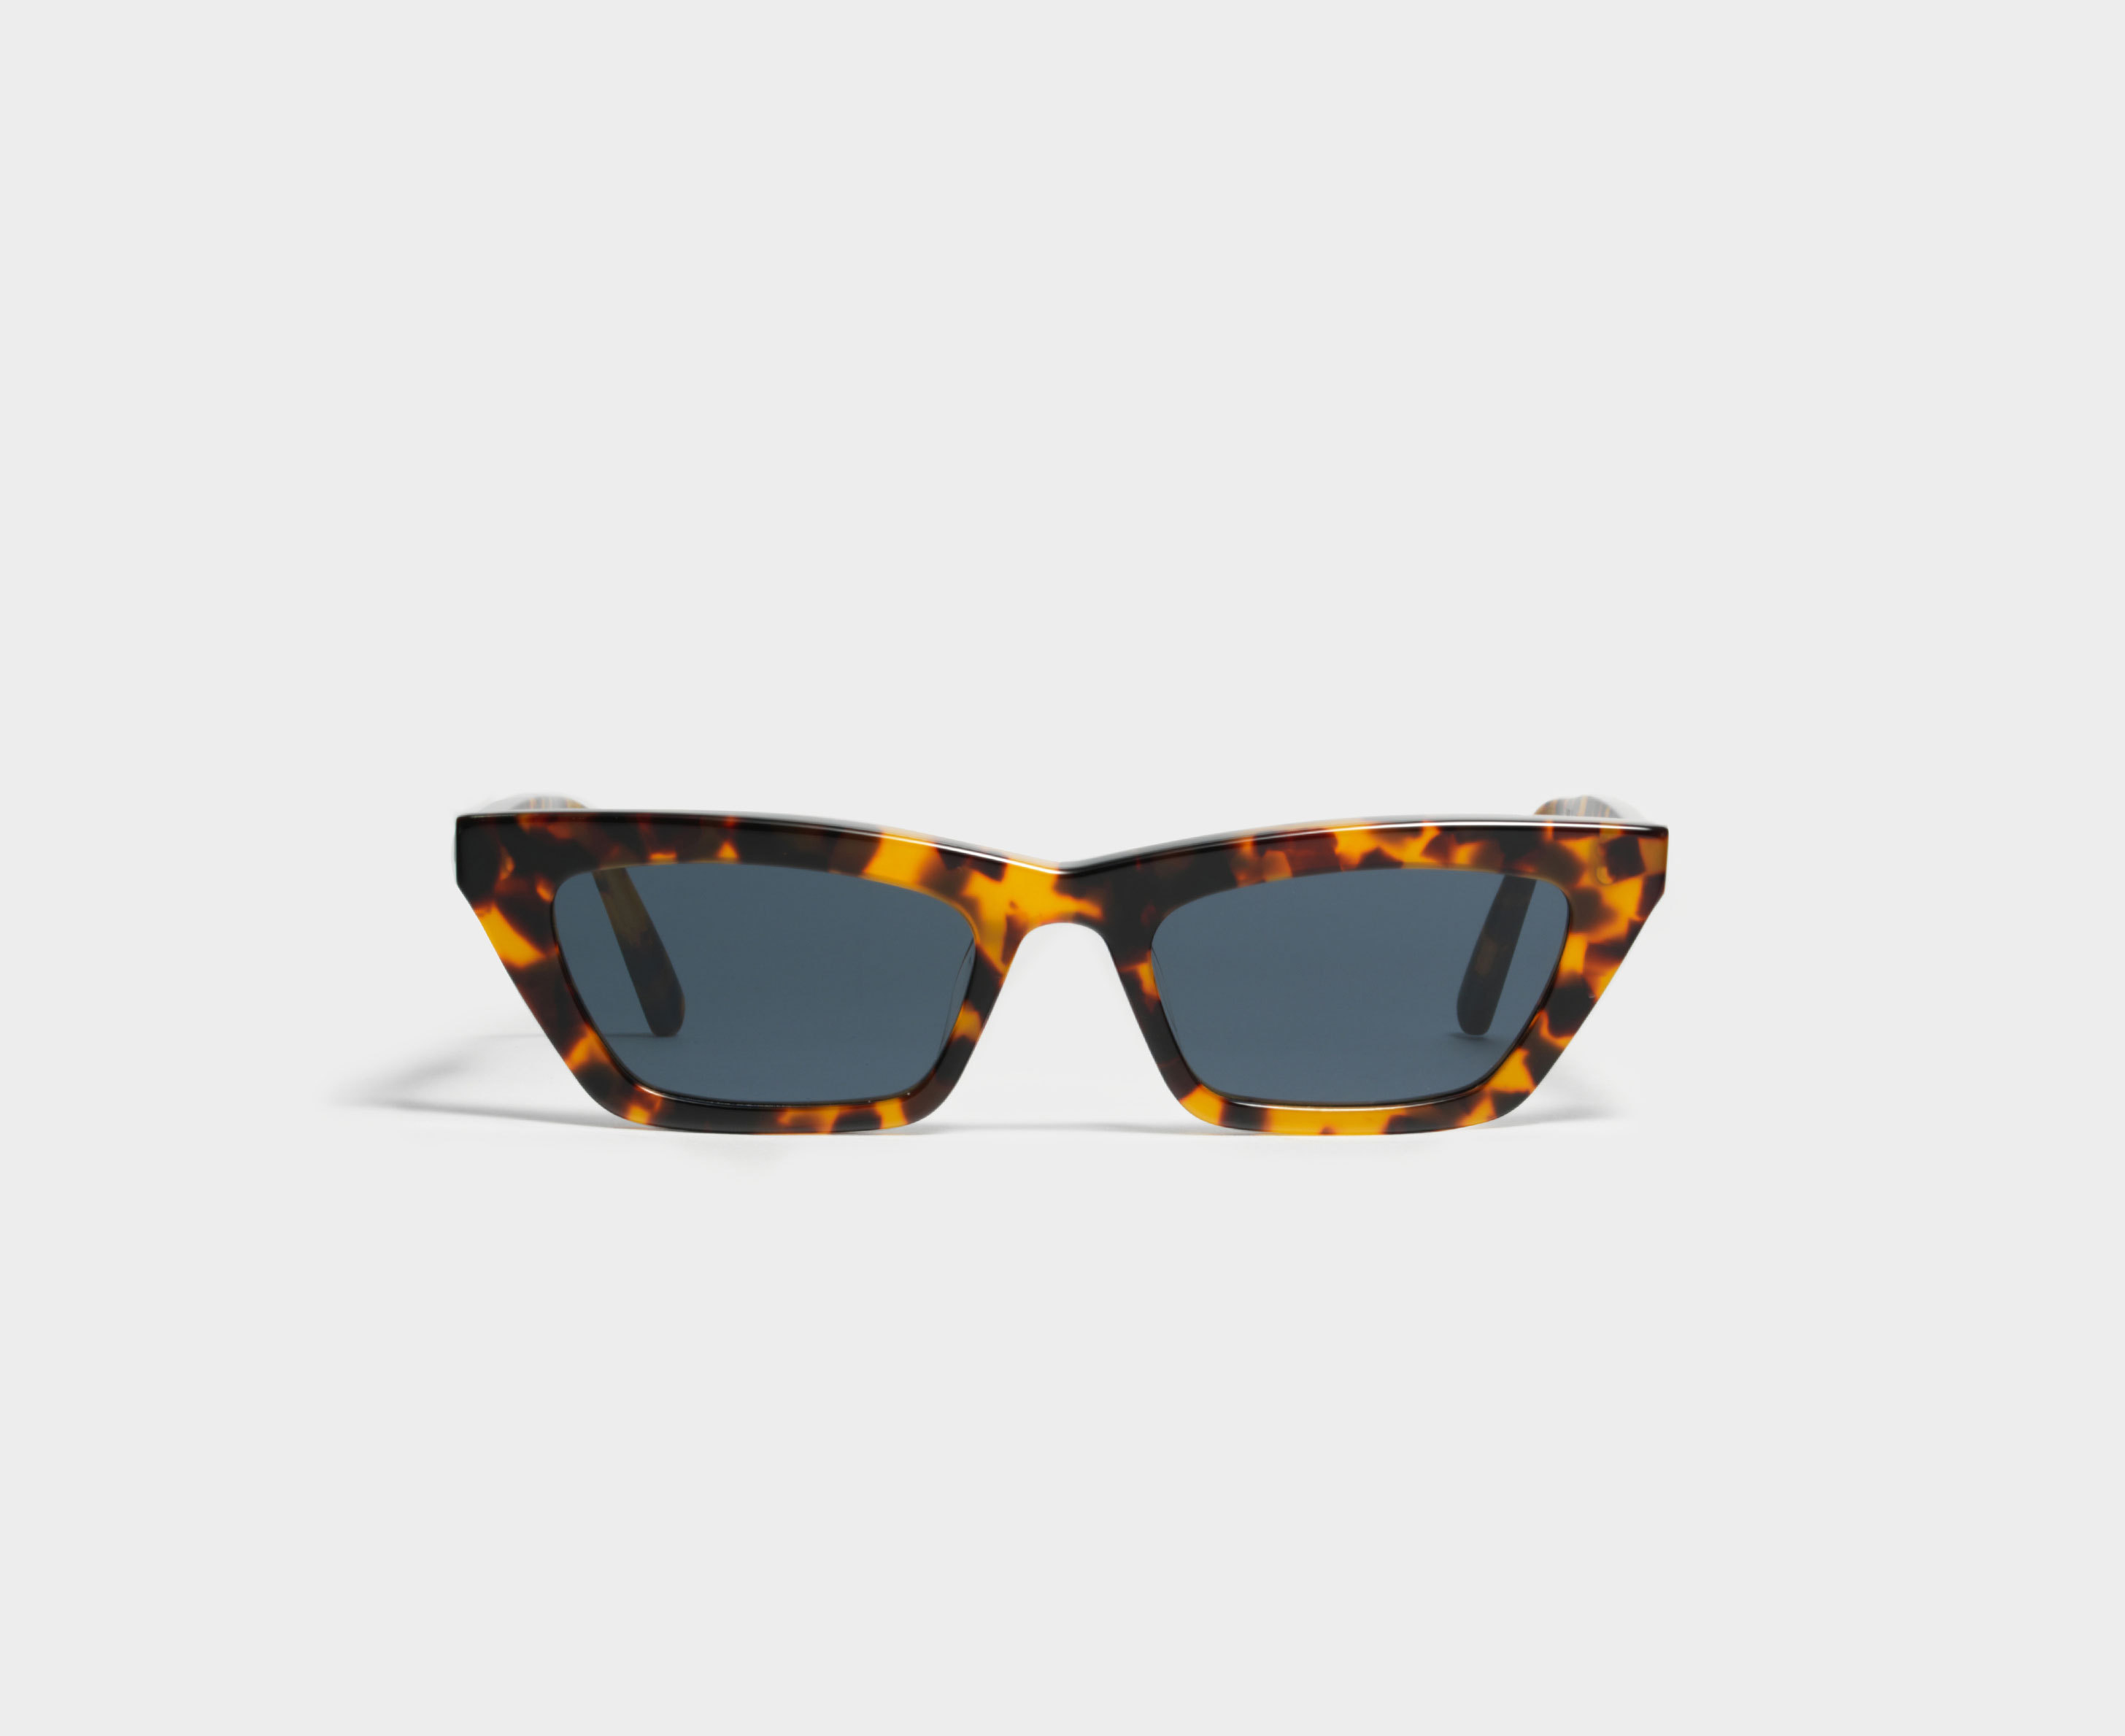 Chapssal Sunglasses by Gentle Monster, available on buyma.us for $412 Kendall Jenner Sunglasses Exact Product